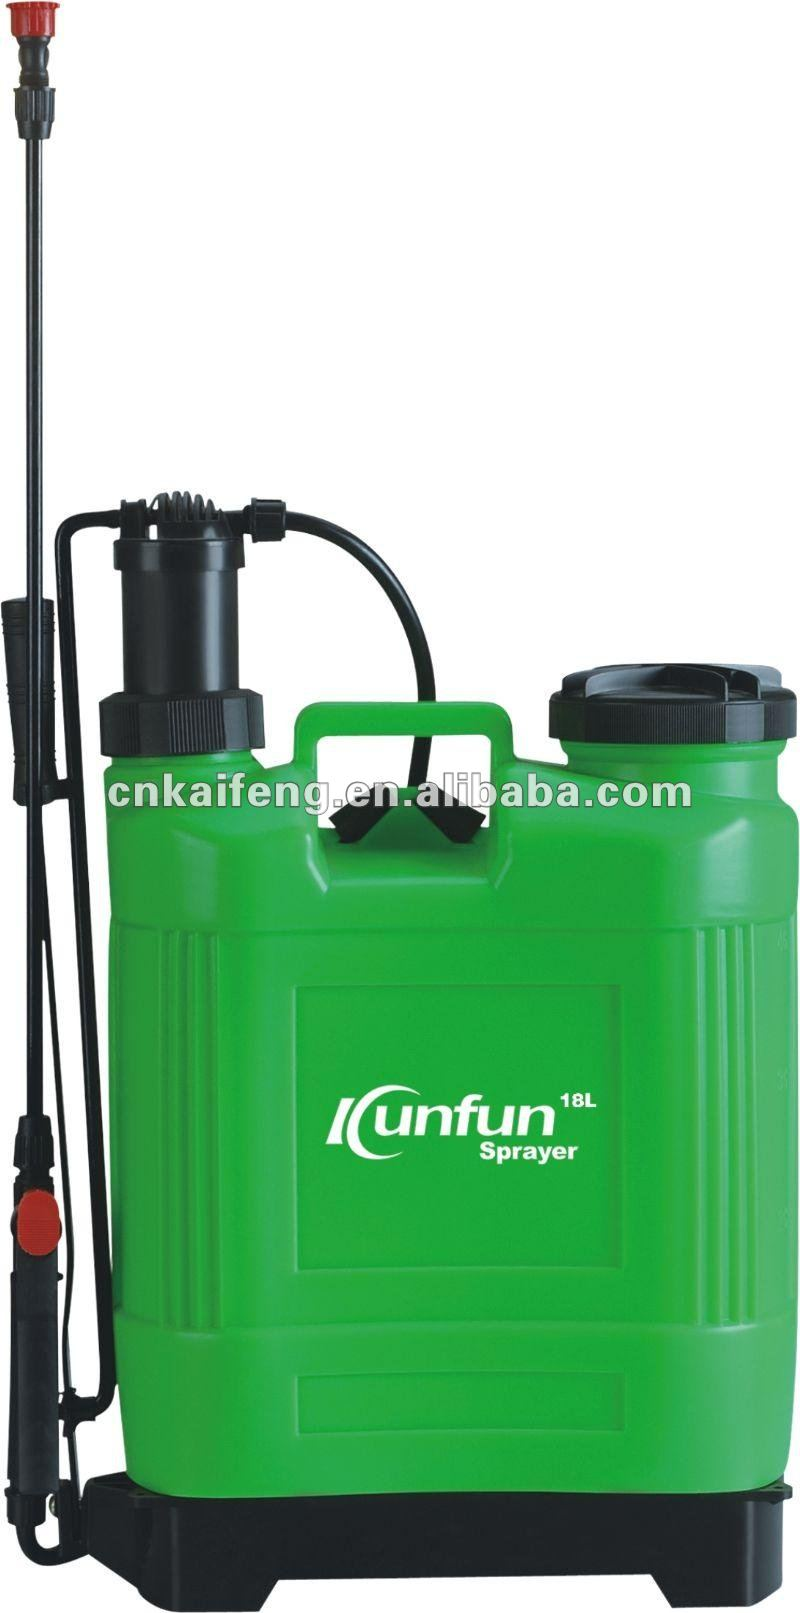 China factory supplier high quality agricultural Automatic farm hand back spray paint sprayer piston pump